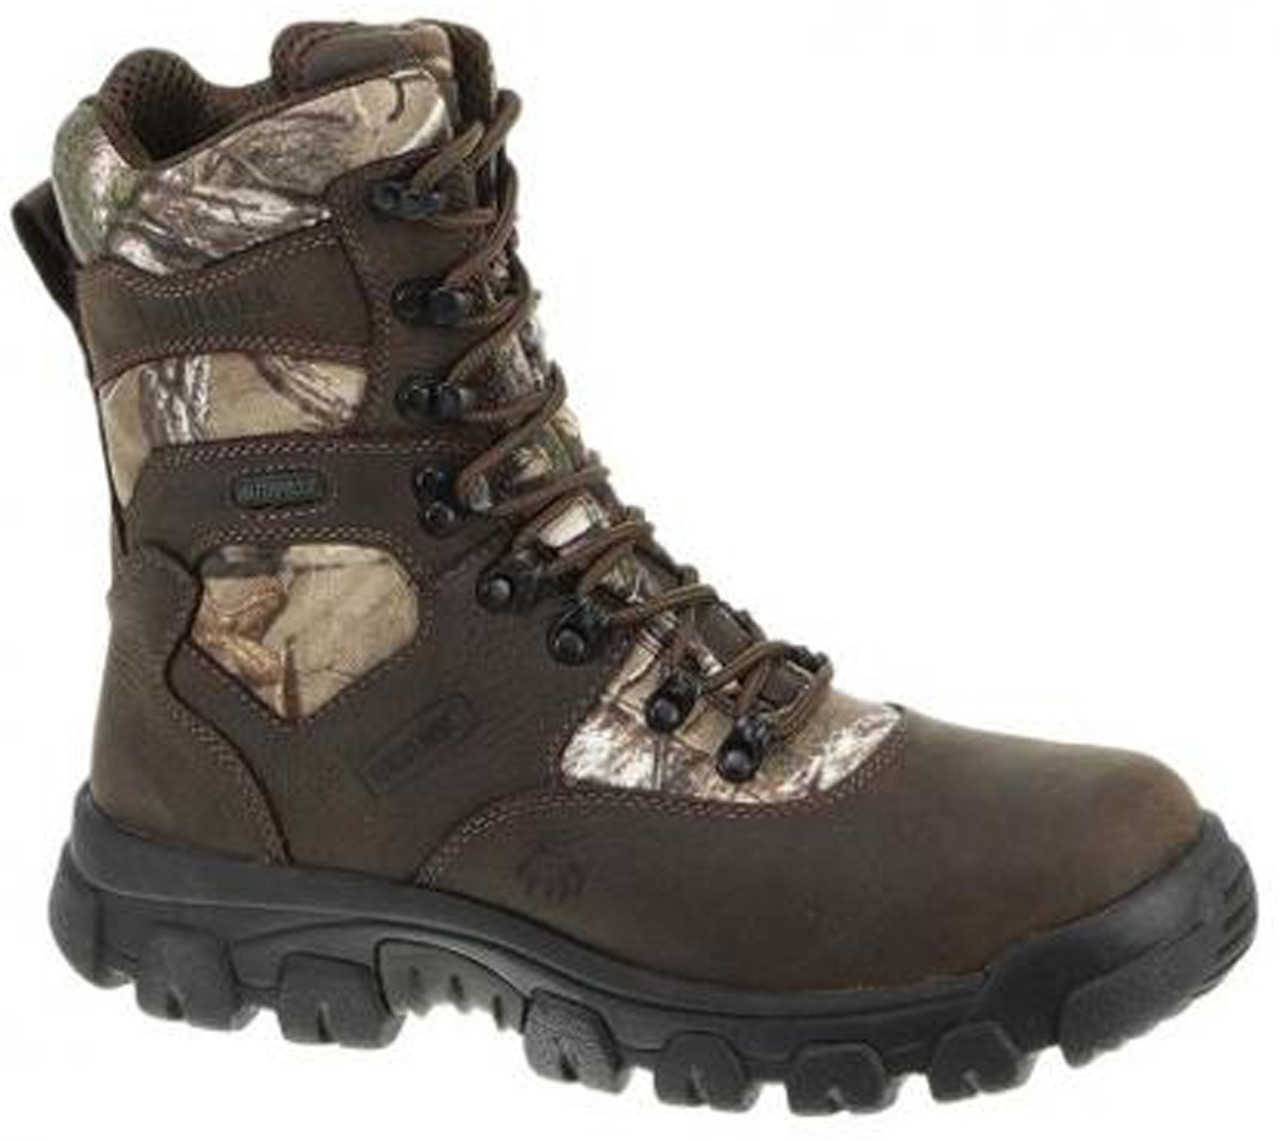 3b76a8a9521 Wolverine W30083 Mens Hawthorne 8 Inch Hunting Boots